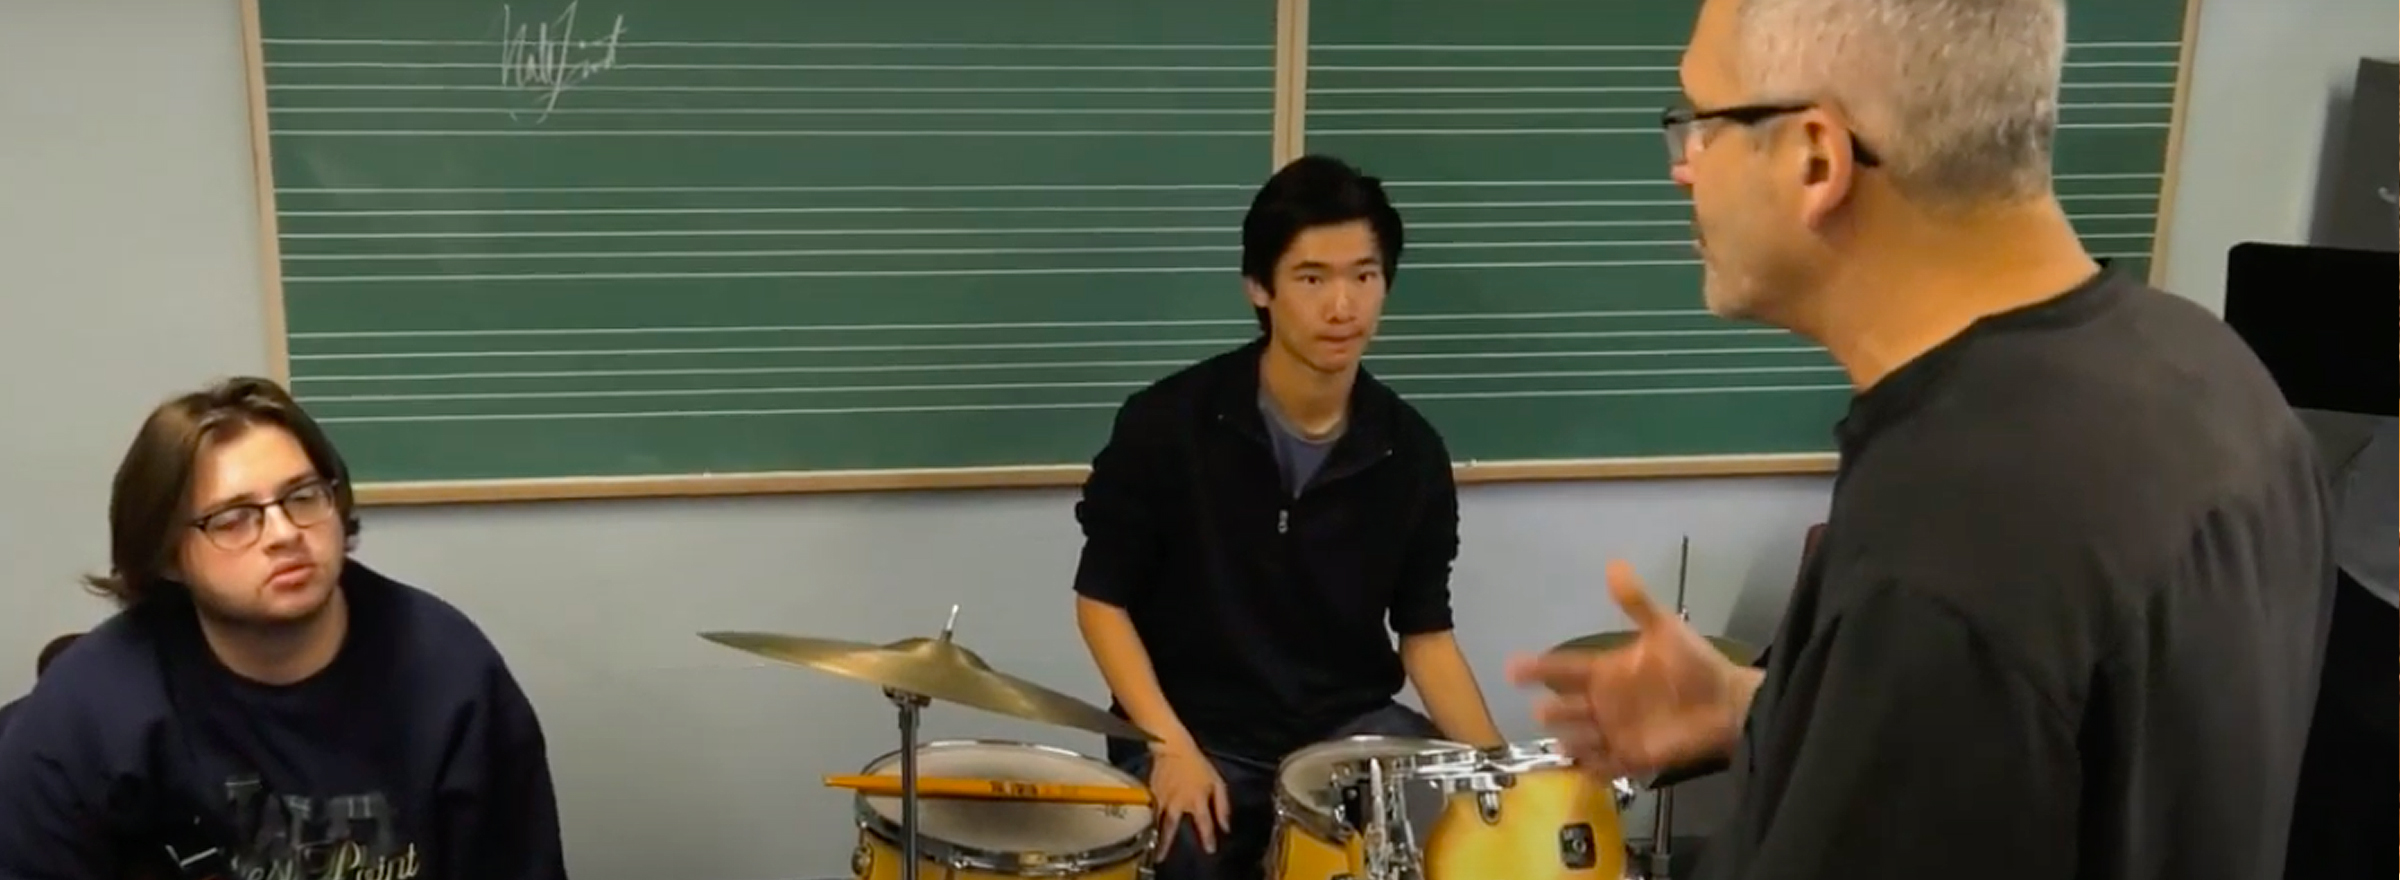 students in a classroom with a drum set